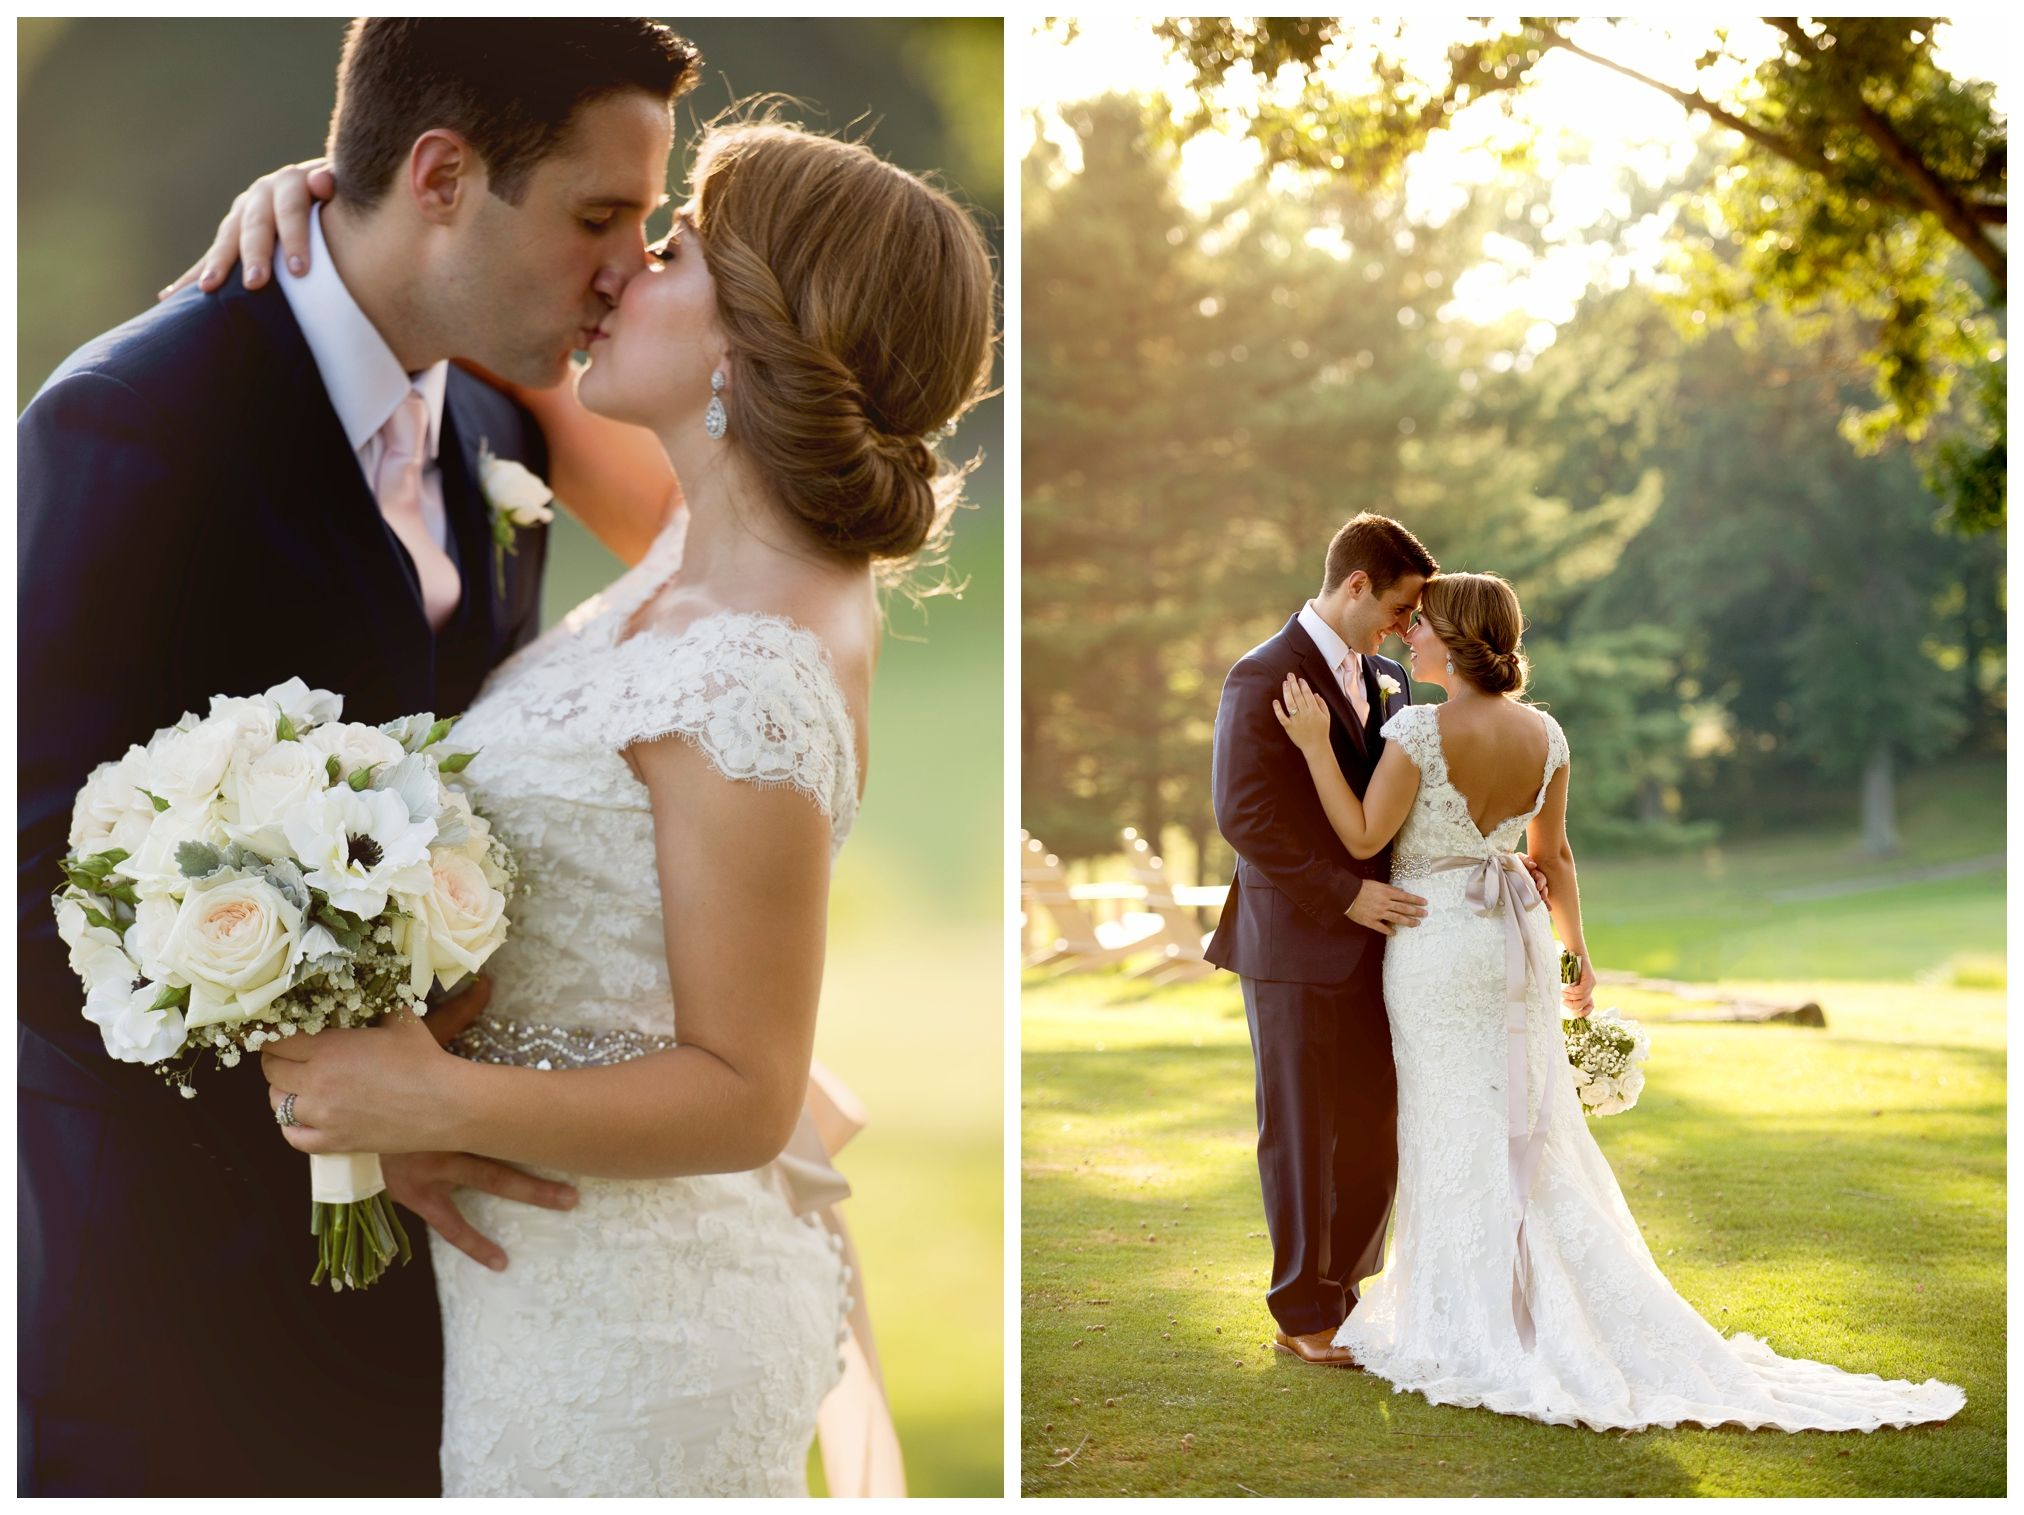 Youngstown country club wedding in youngstown oh photographed by